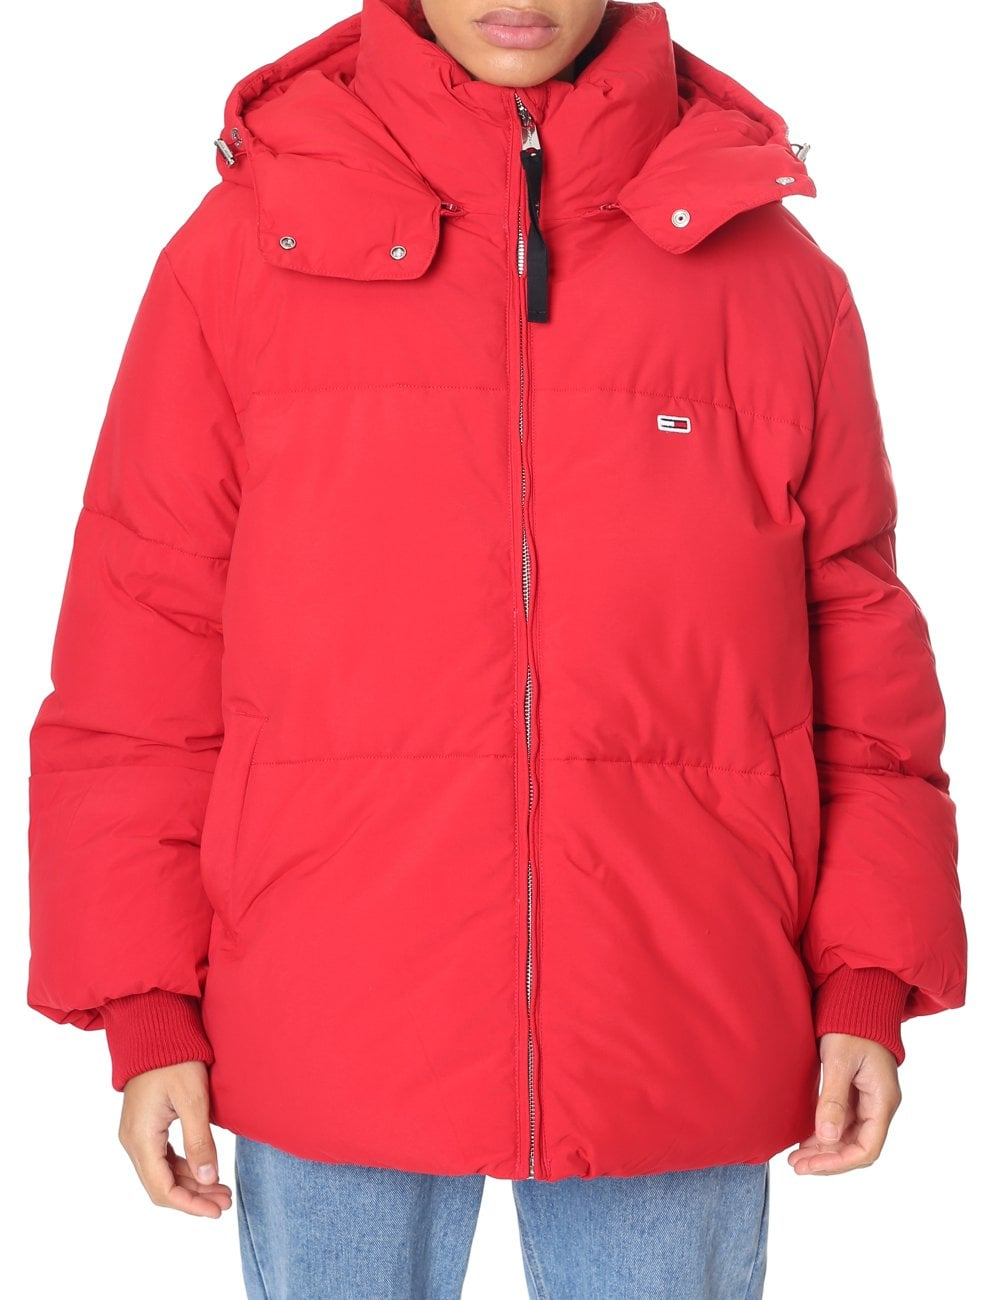 8606366df Tommy Hilfiger Woman's Oversized Puffer Jacket